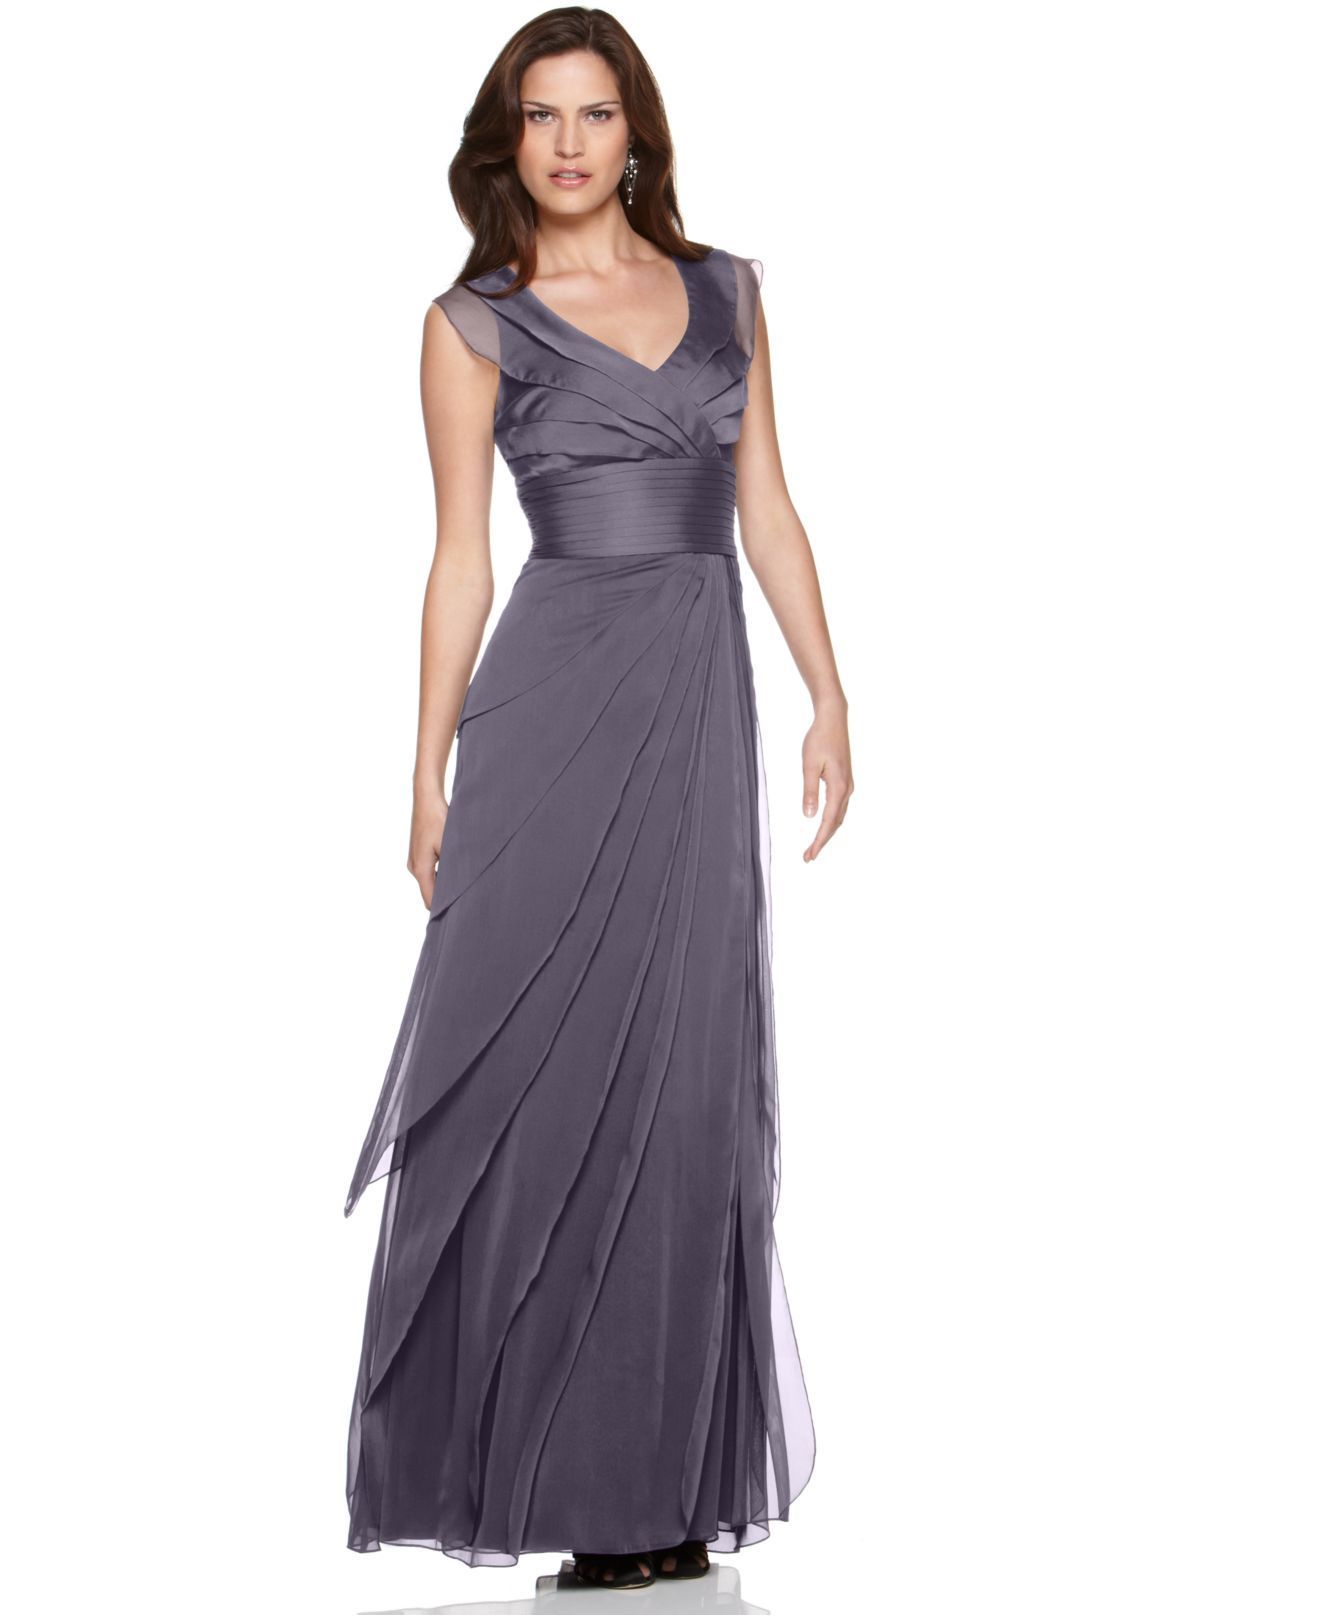 Adrianna papell dress tiered evening dress womens for Macy s dresses for weddings